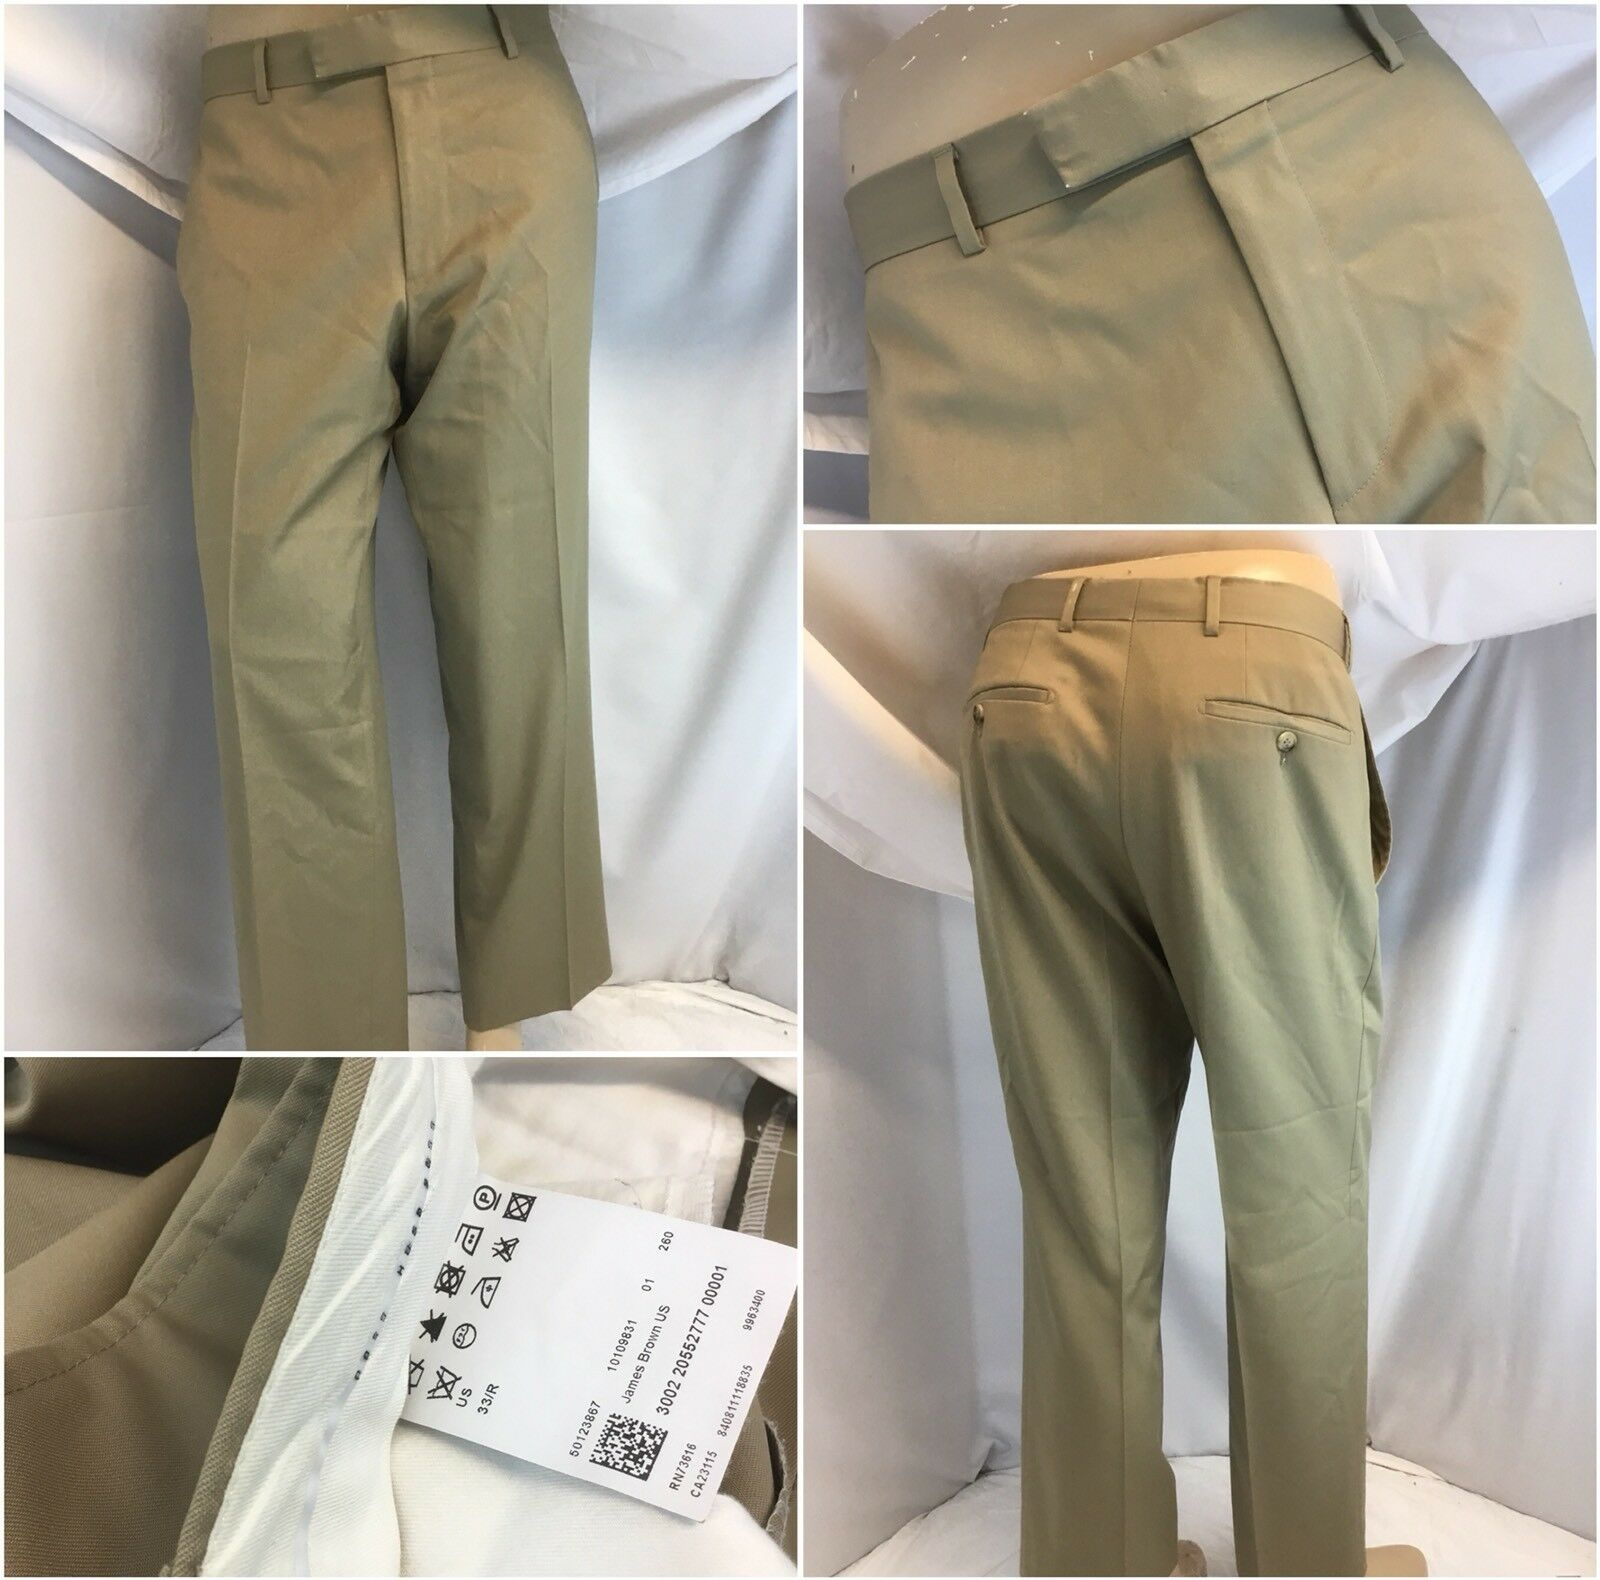 Hugo Boss Pants 33x28 Tan 100% Wool Super 100s Flat Front USA EUC YGI G8-612